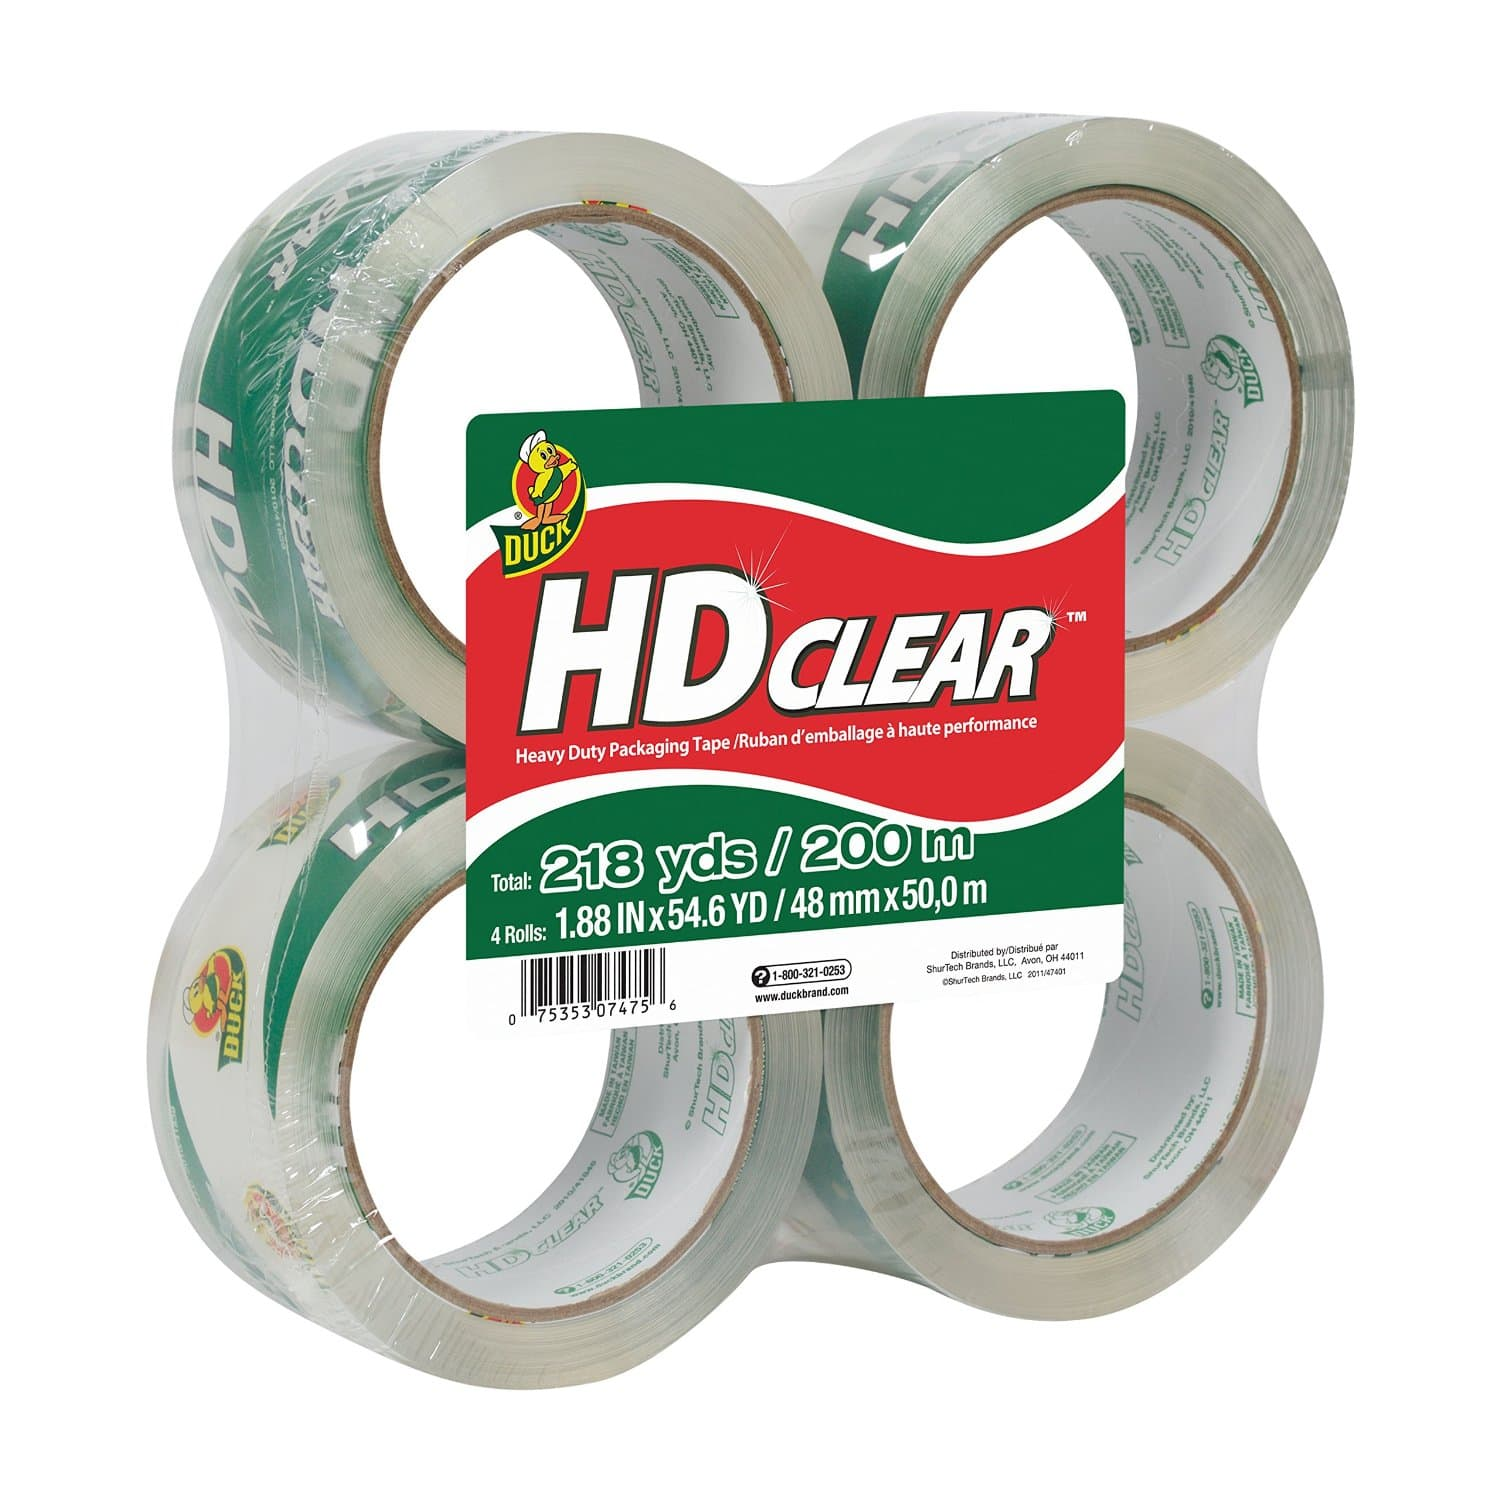 4-Pack Duck Brand HD Clear High Performance Packaging Tape. $6.48 + Free Shipping @ Amazon